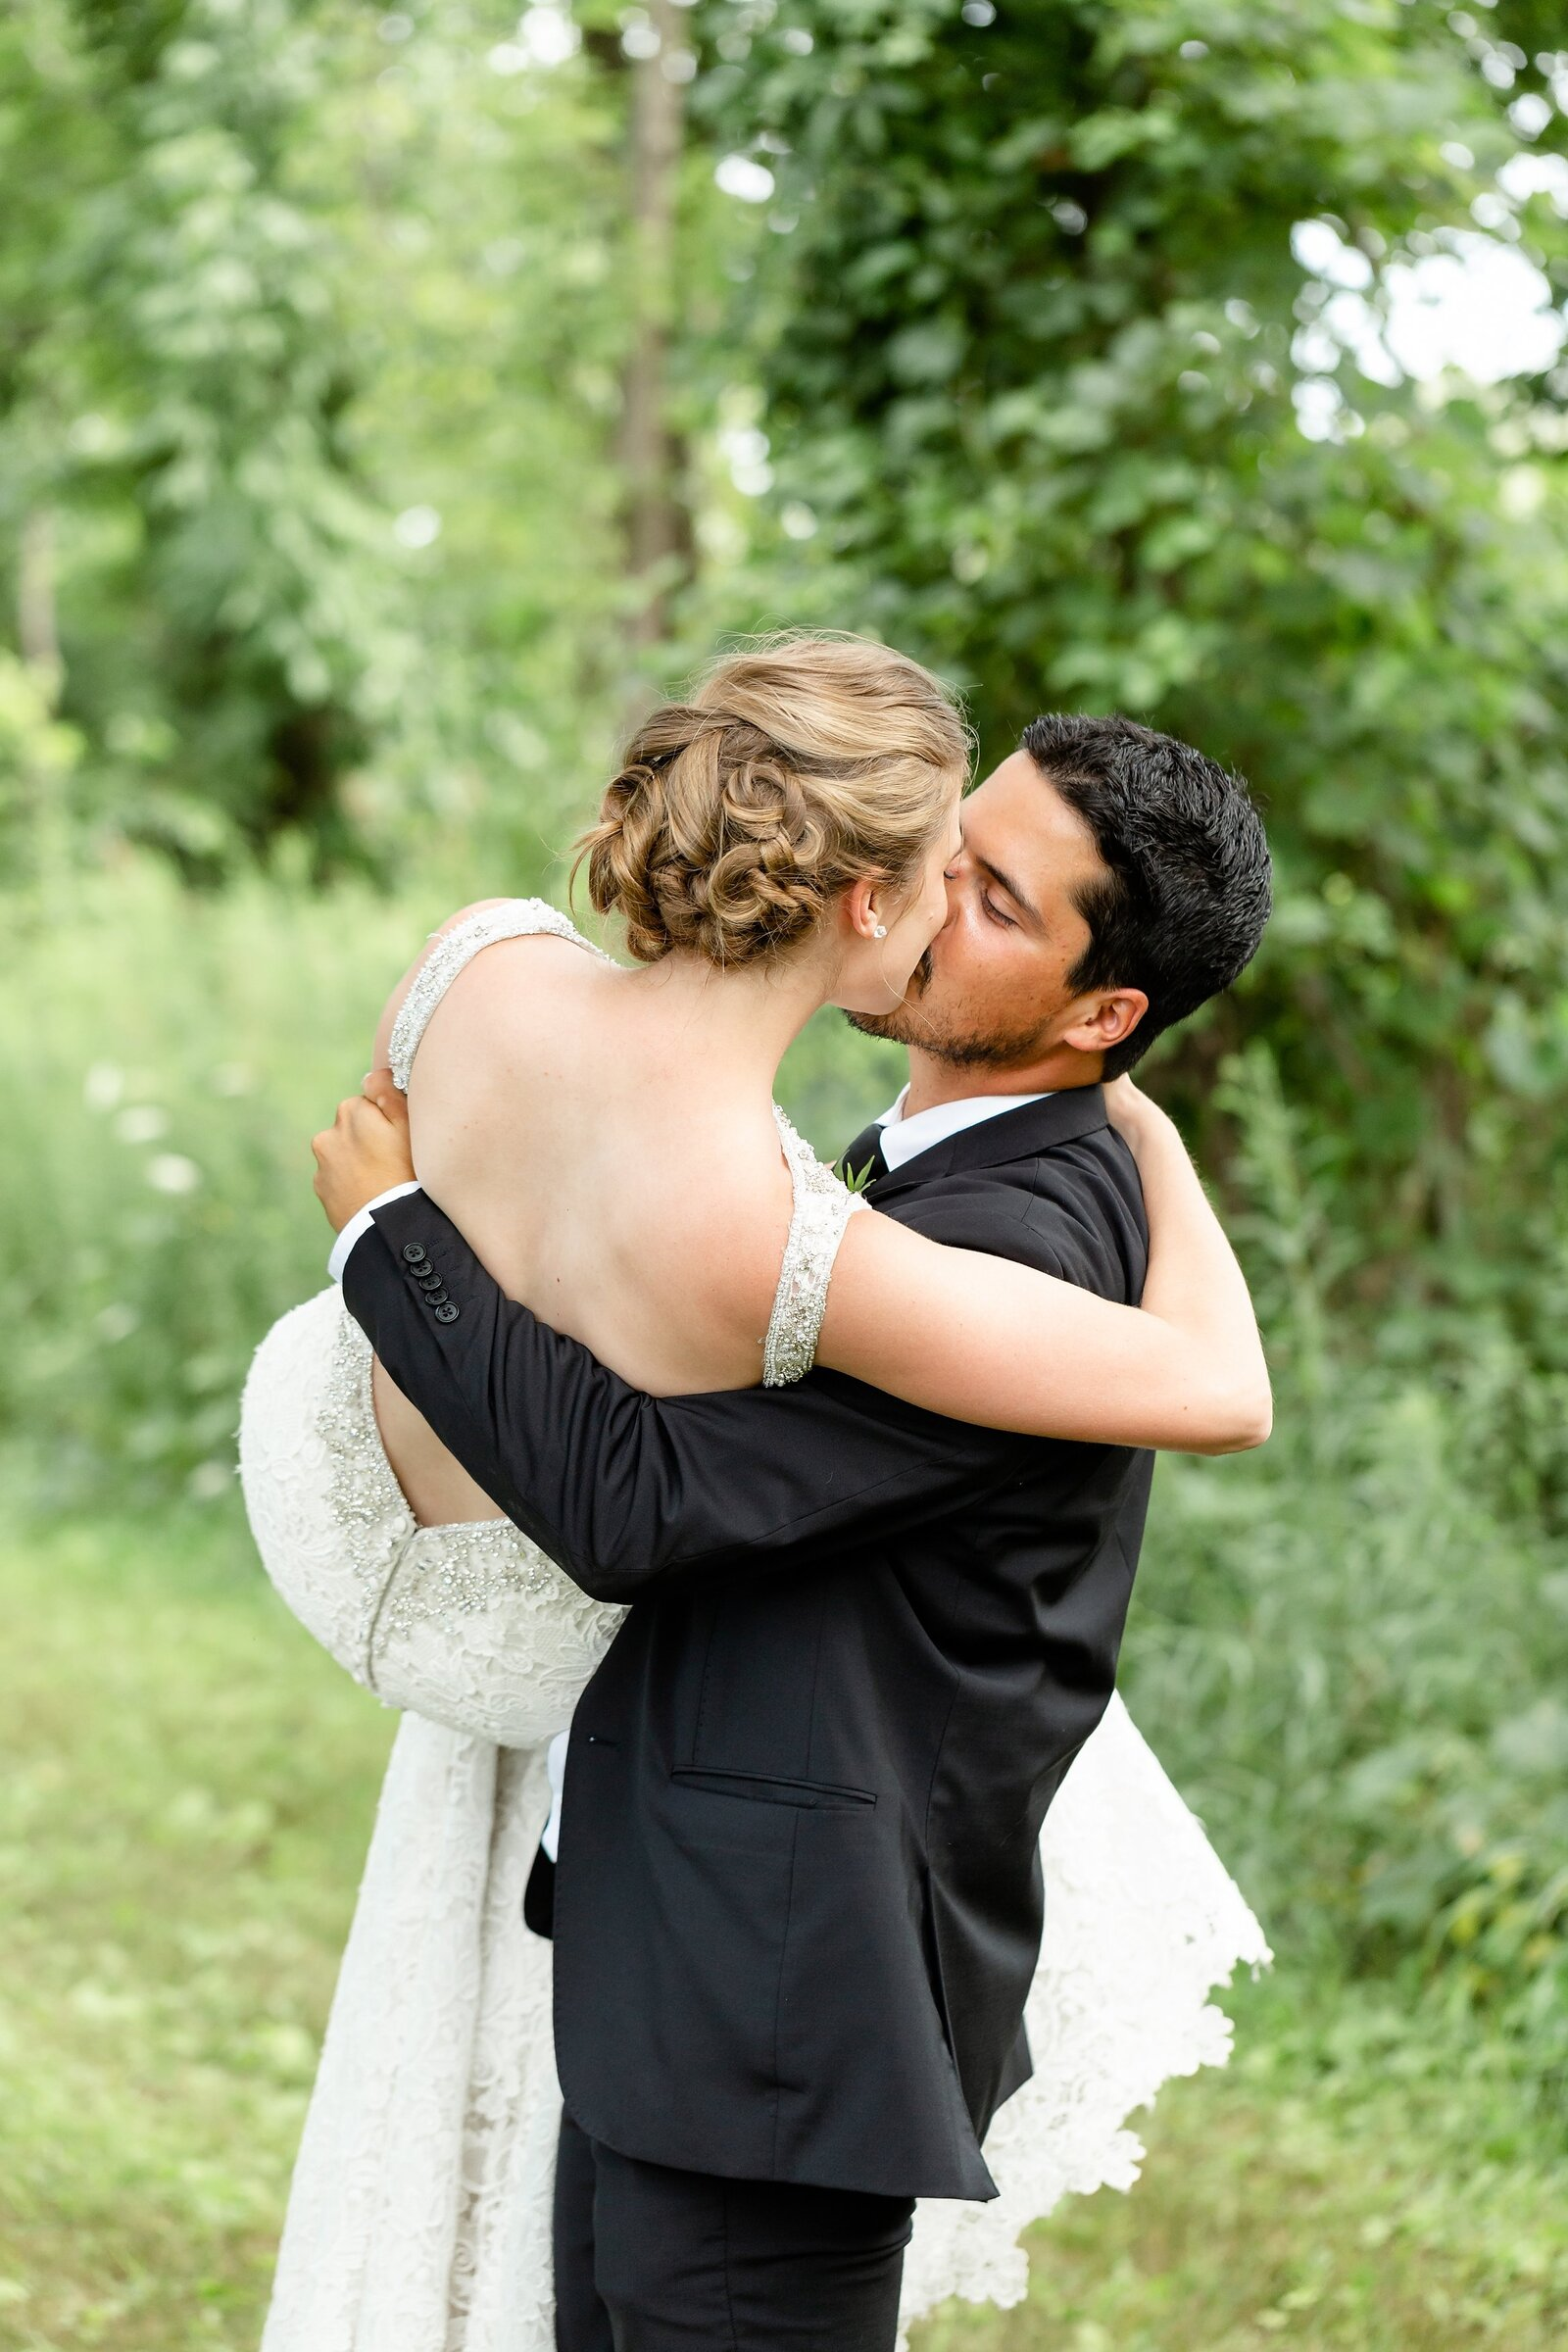 Groom-picks-up-his-bride-and-kisses-her